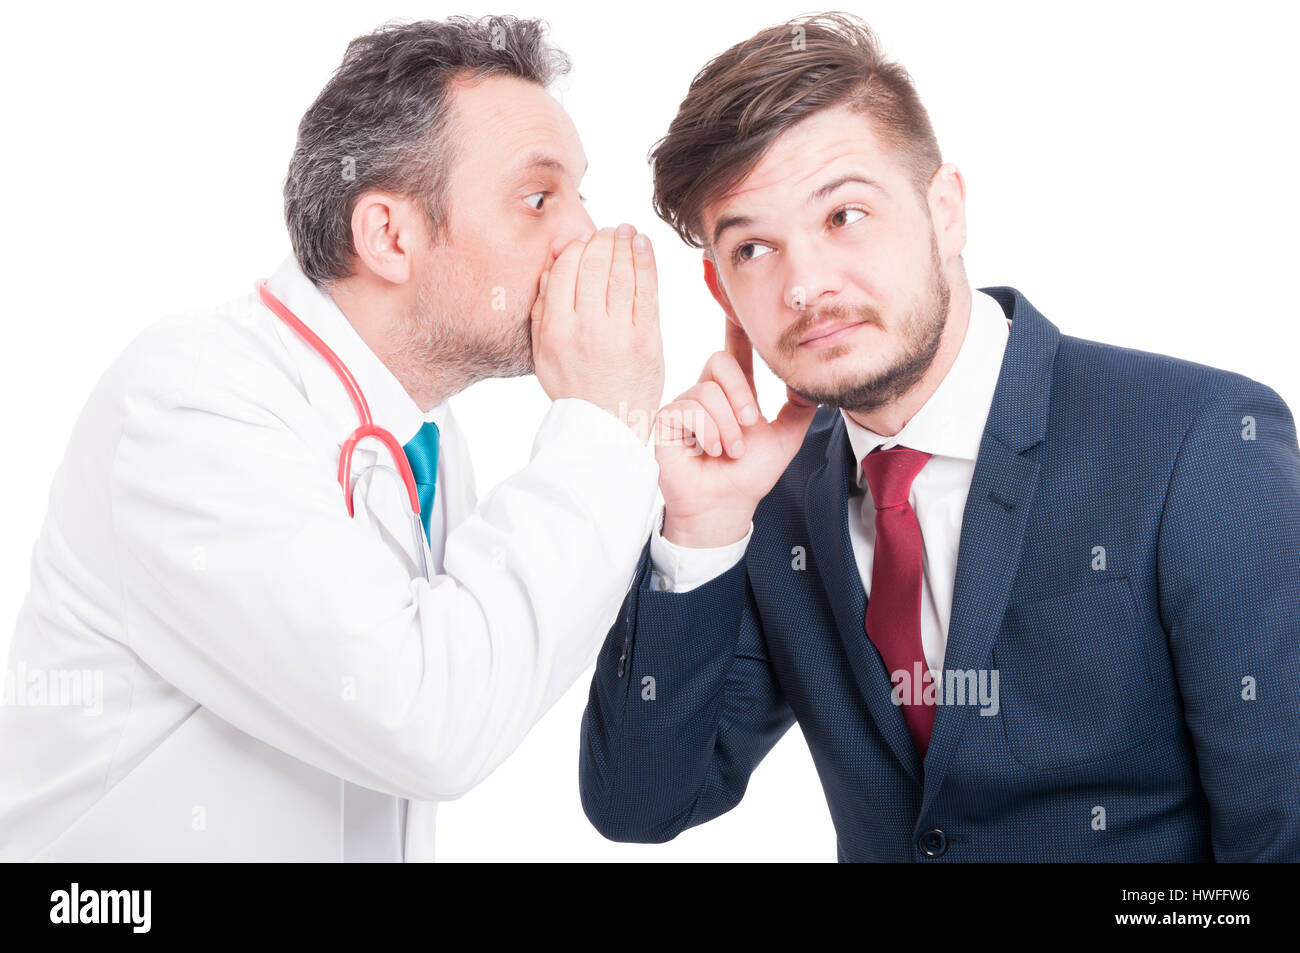 Telling Secret Stock Photos \u0026 Telling Secret Stock Images - Alamy